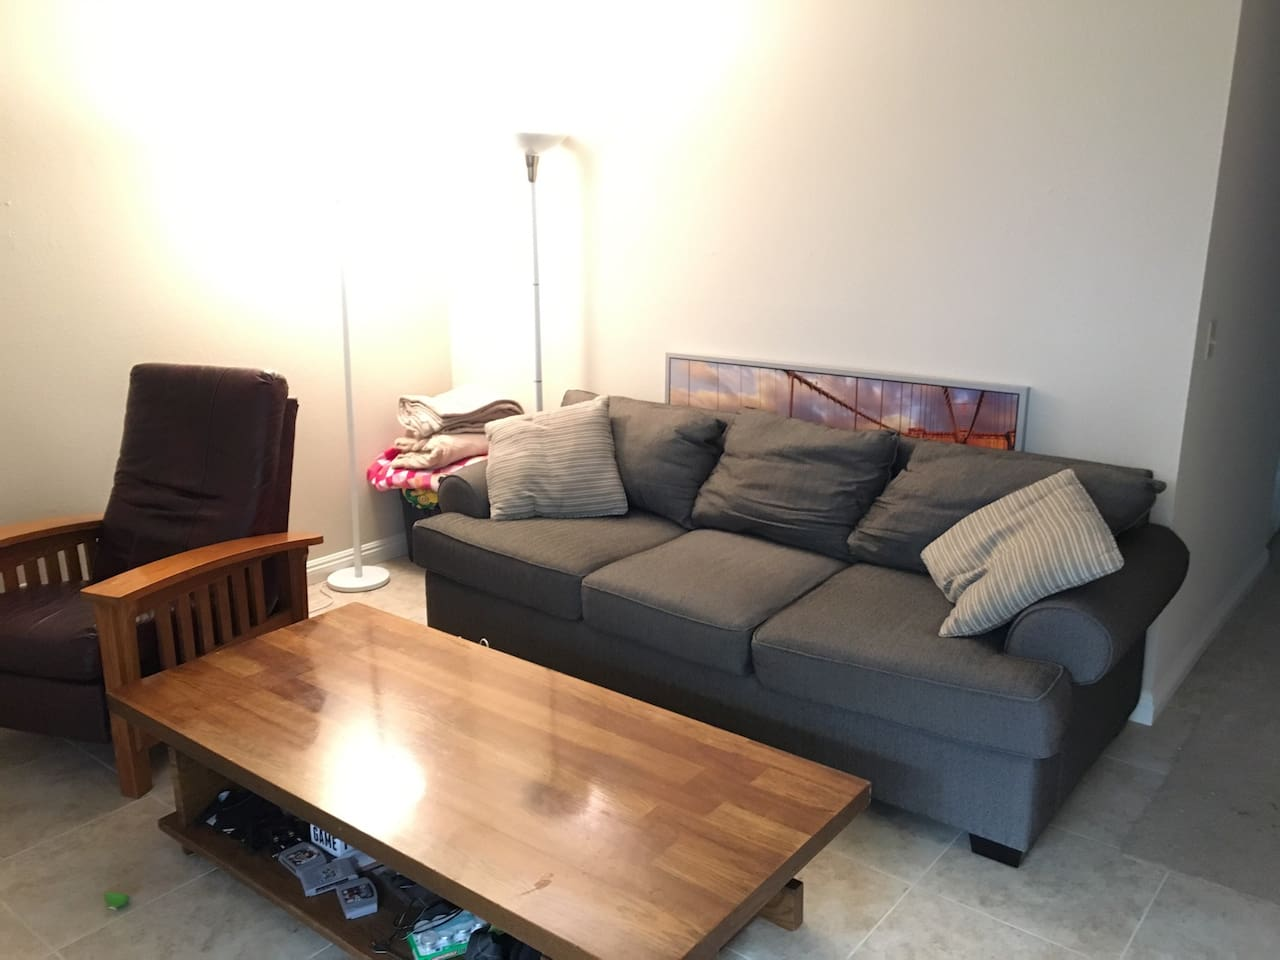 Very big, deep, comfortable couch!